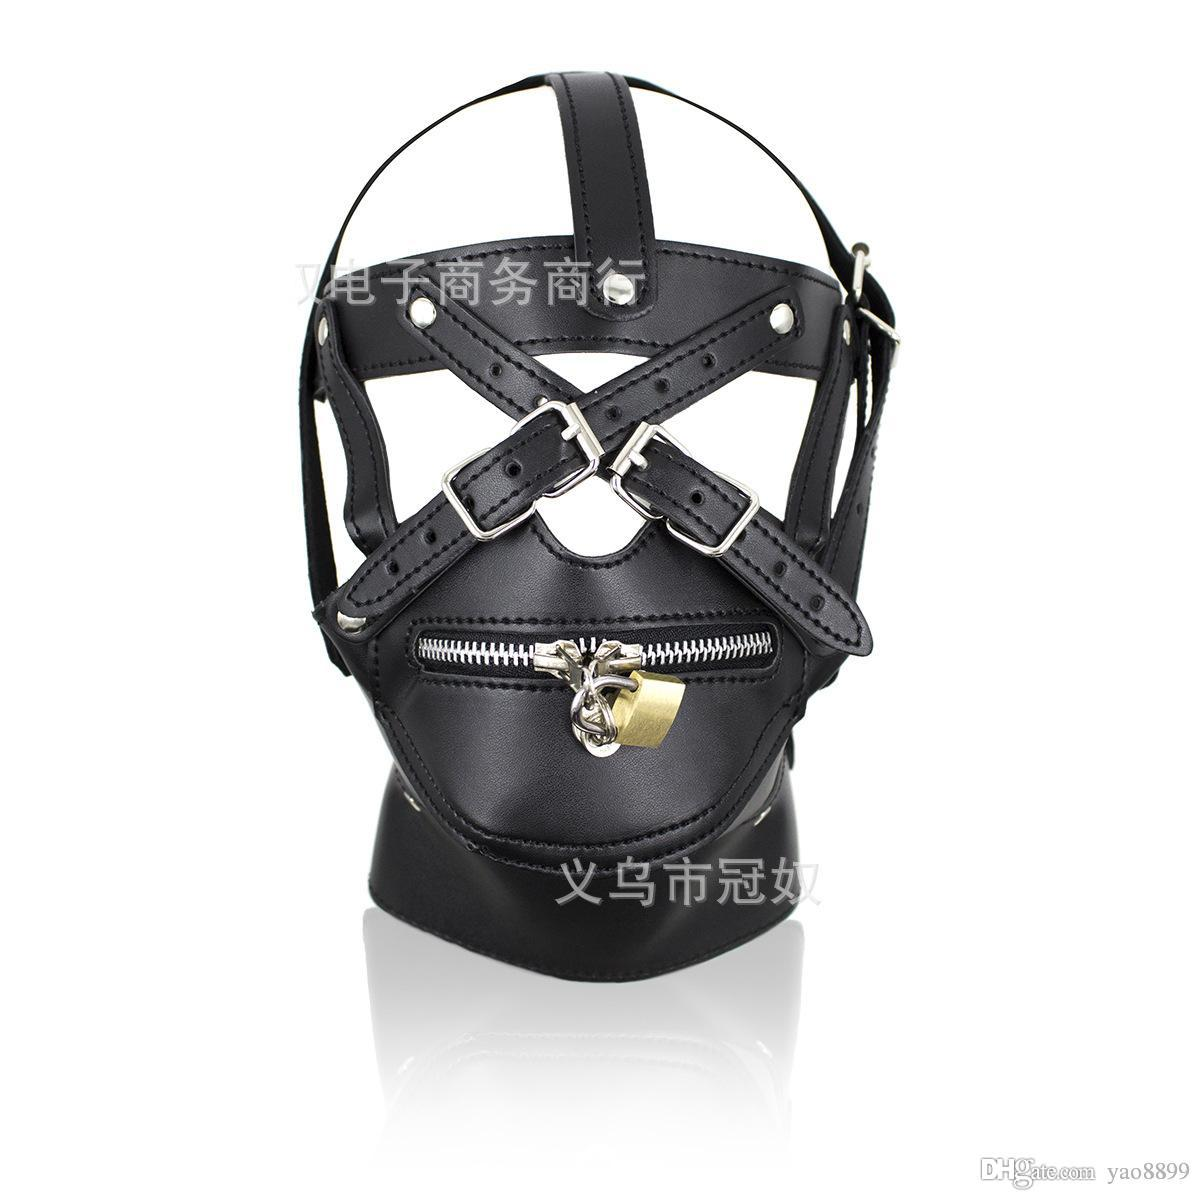 2017 BDSM Sex Toys Black Leather Head Harness With Muzzle Leather Muzzle Bondage Restraint Gear Adult Sex Product A990